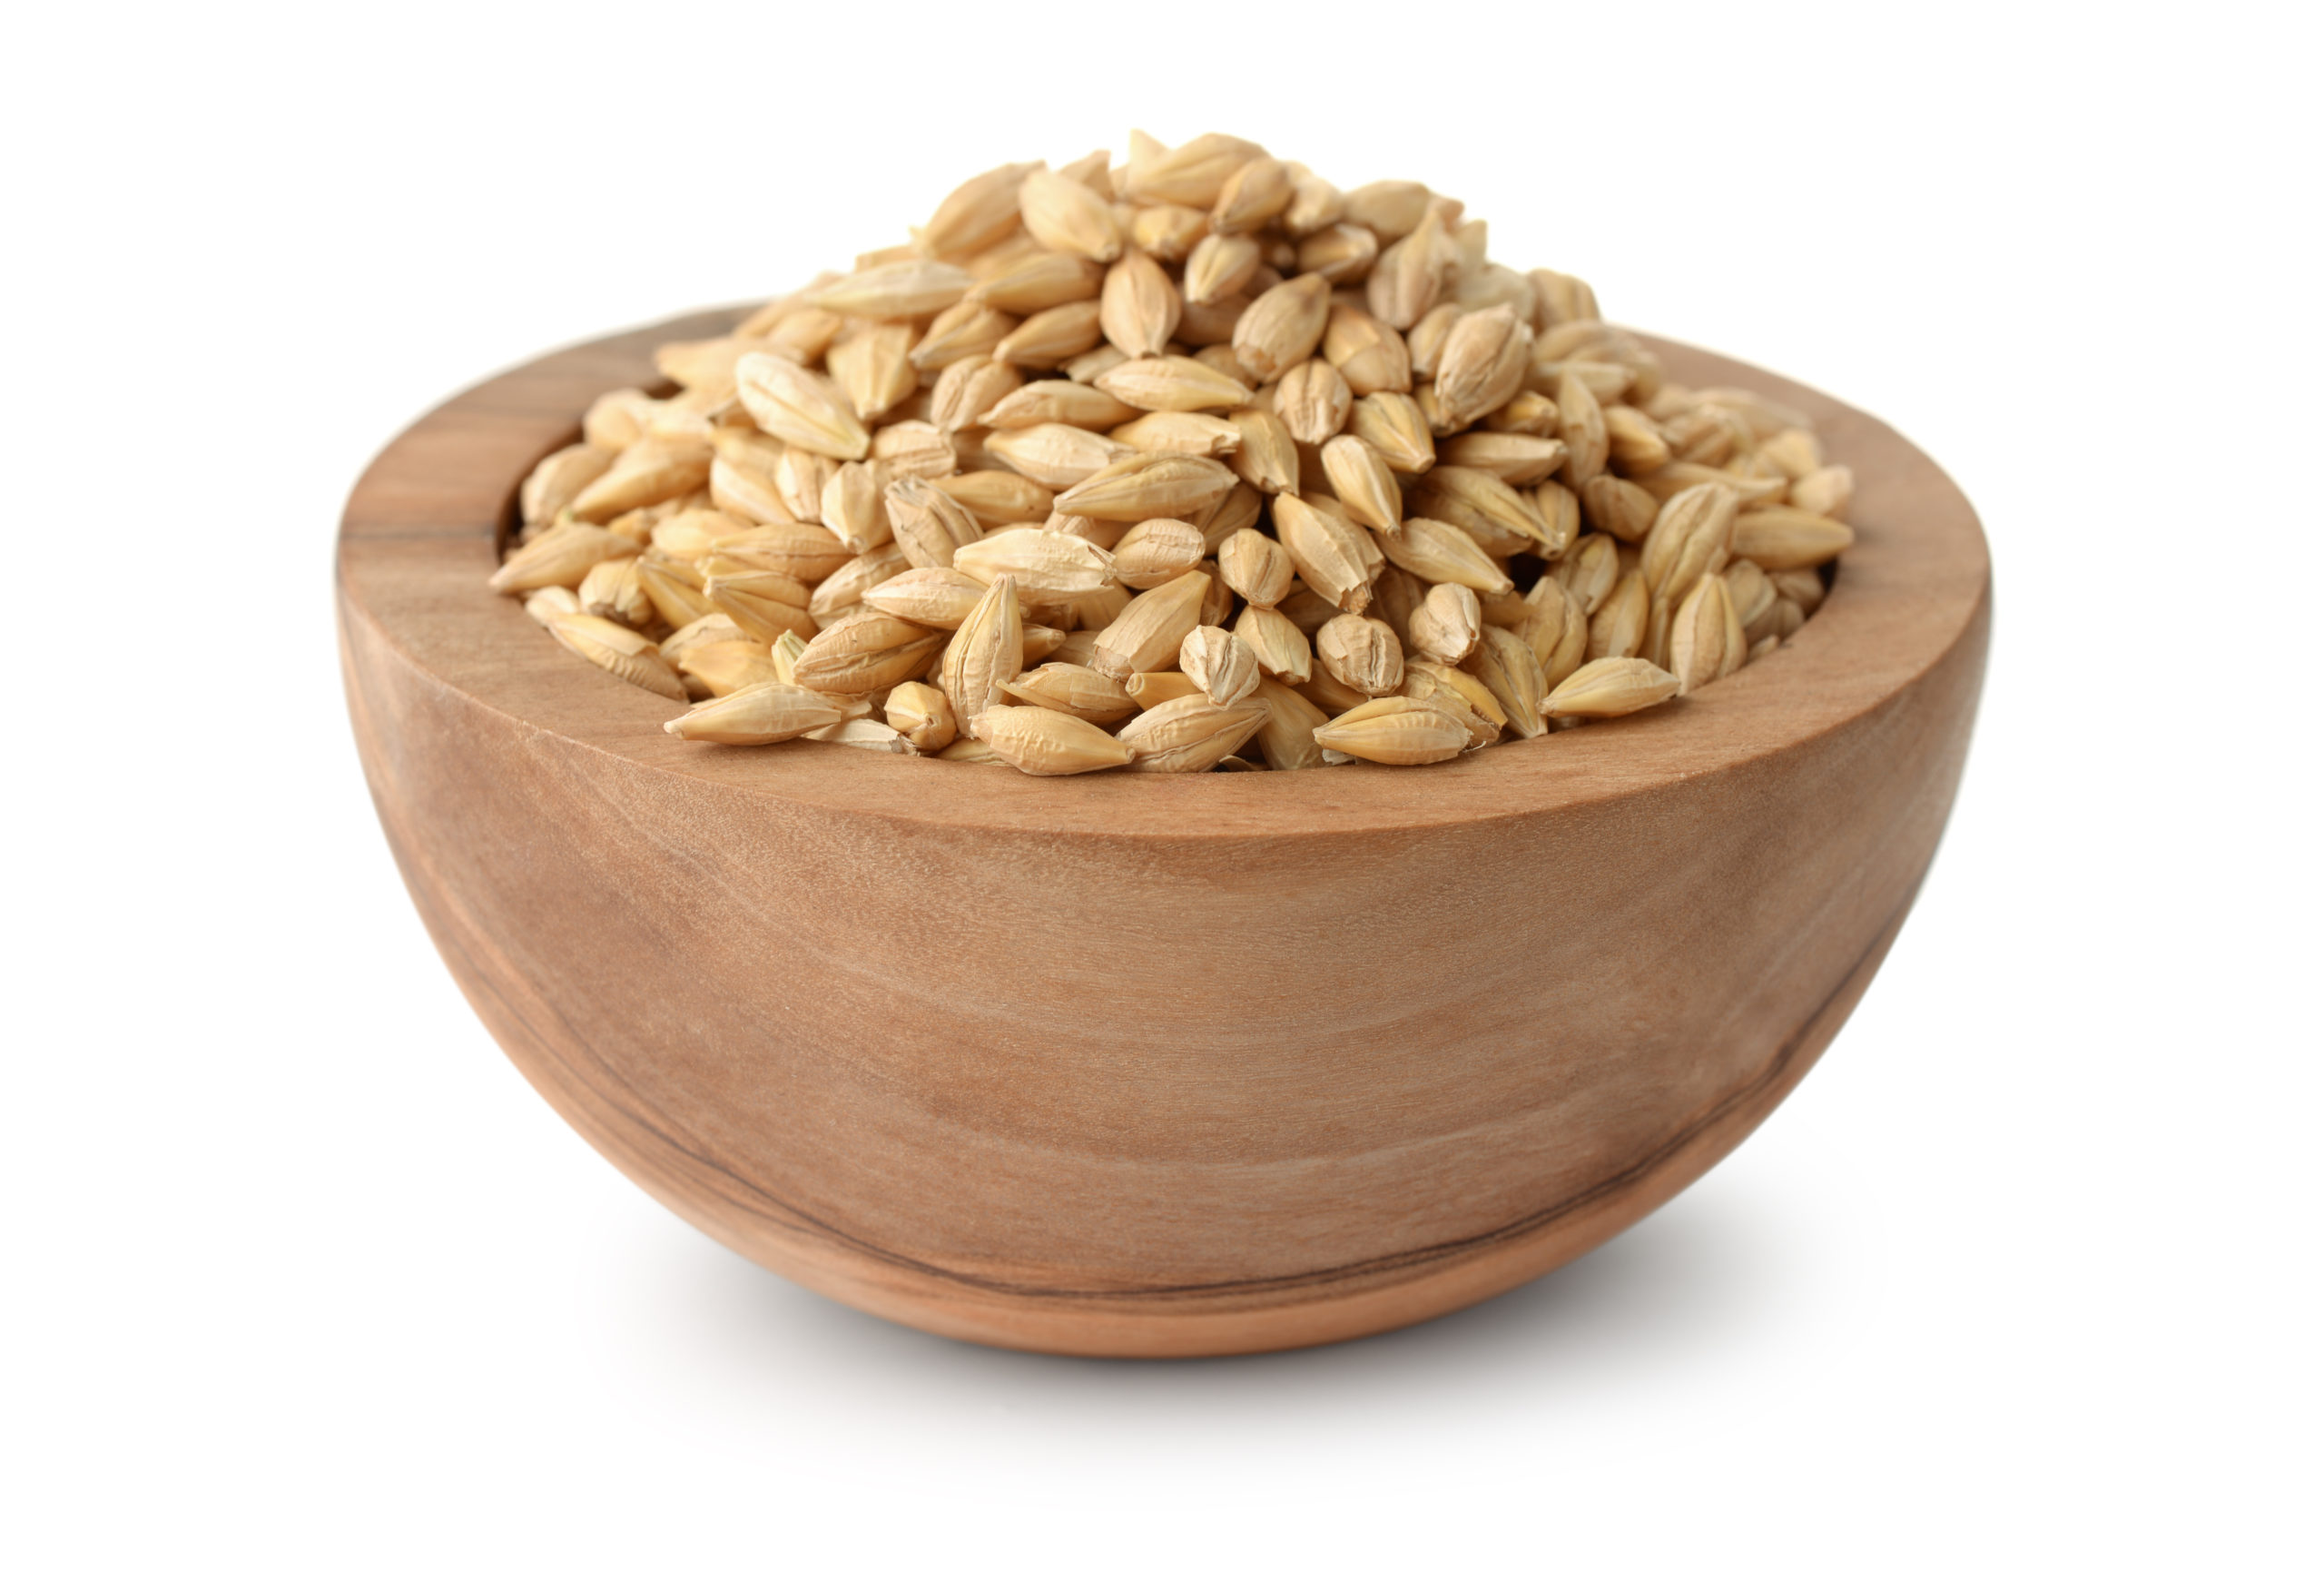 Wooden bowl of barley grains isolated on white